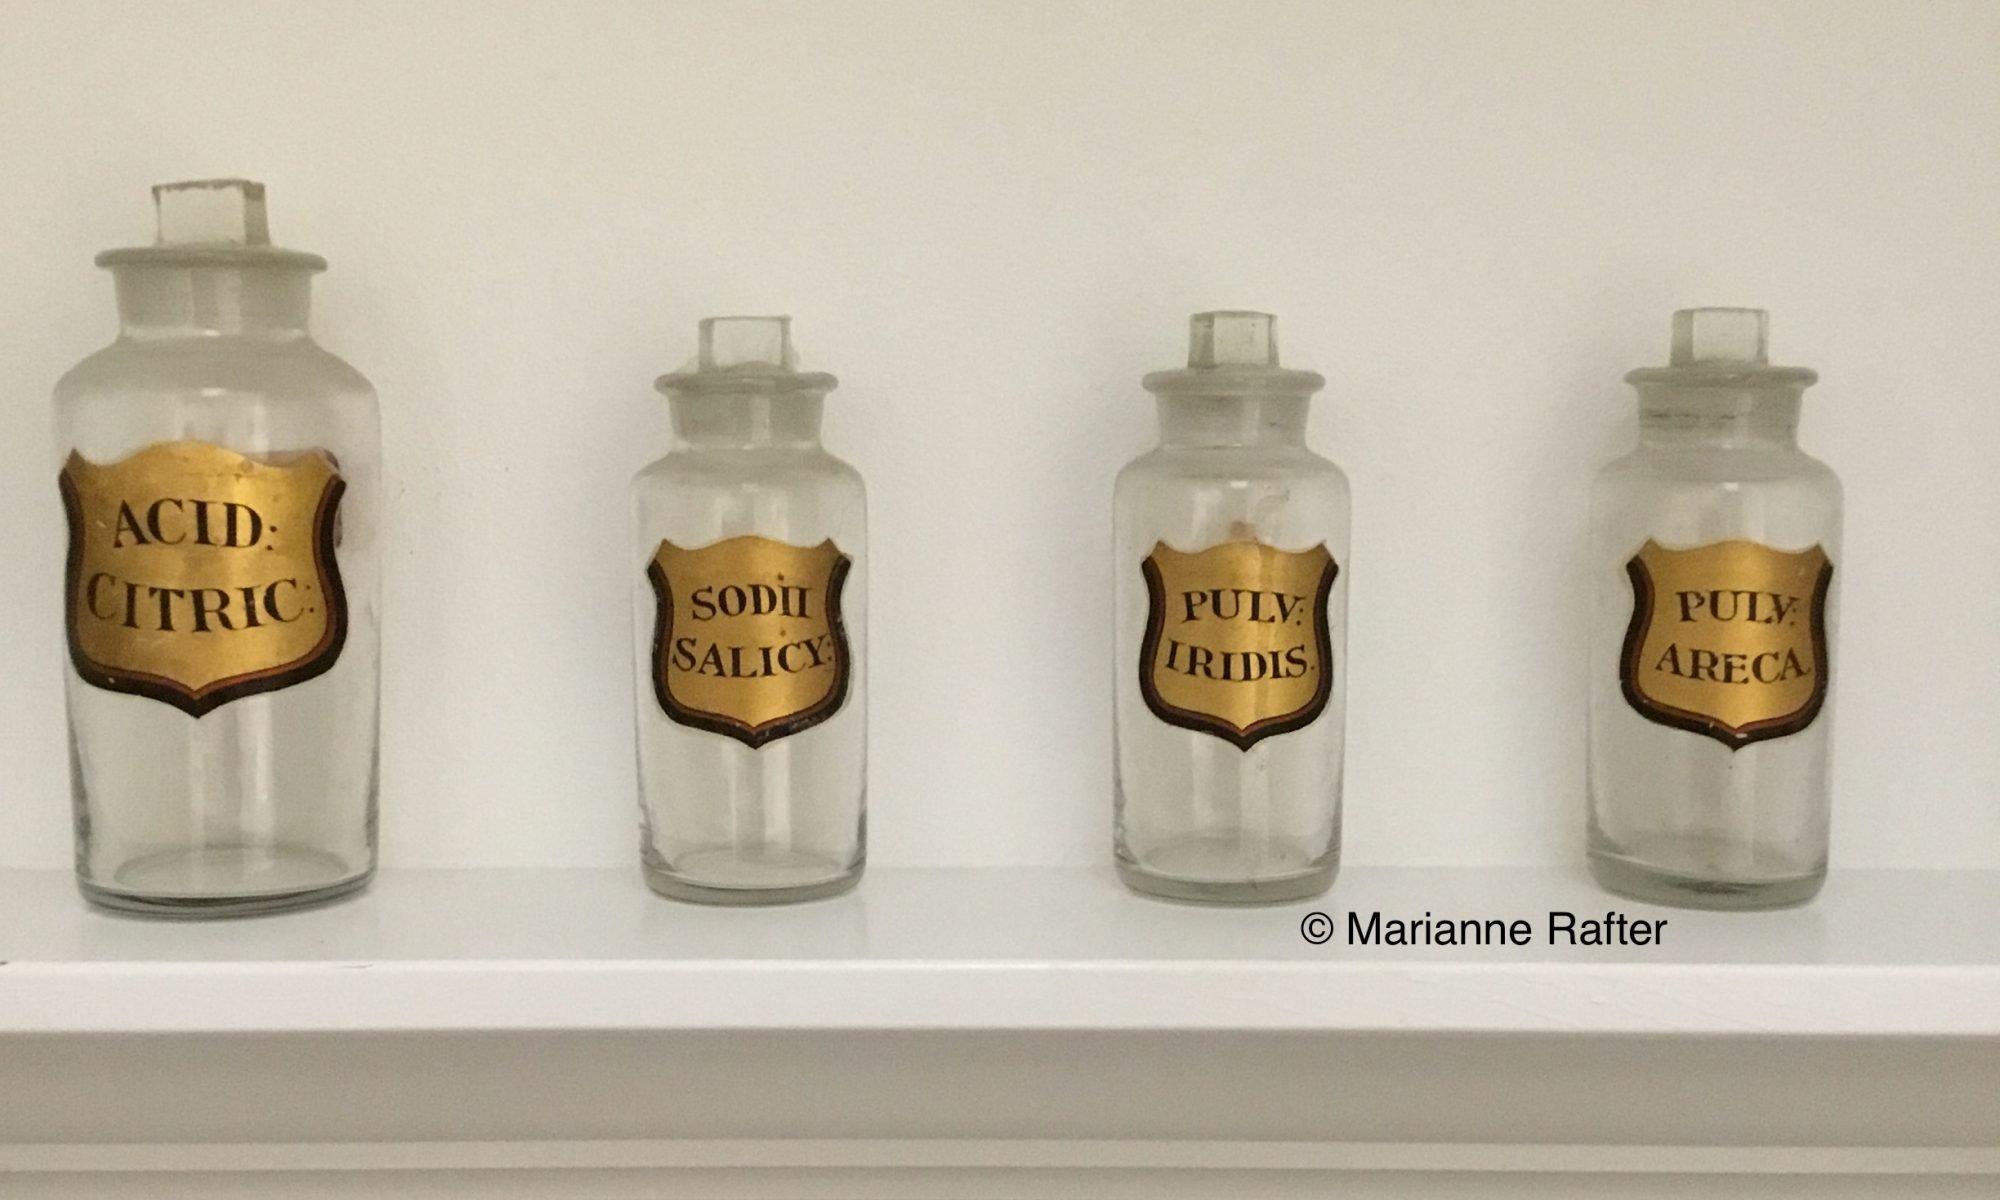 Old glass pharmacy bottles with gold labels